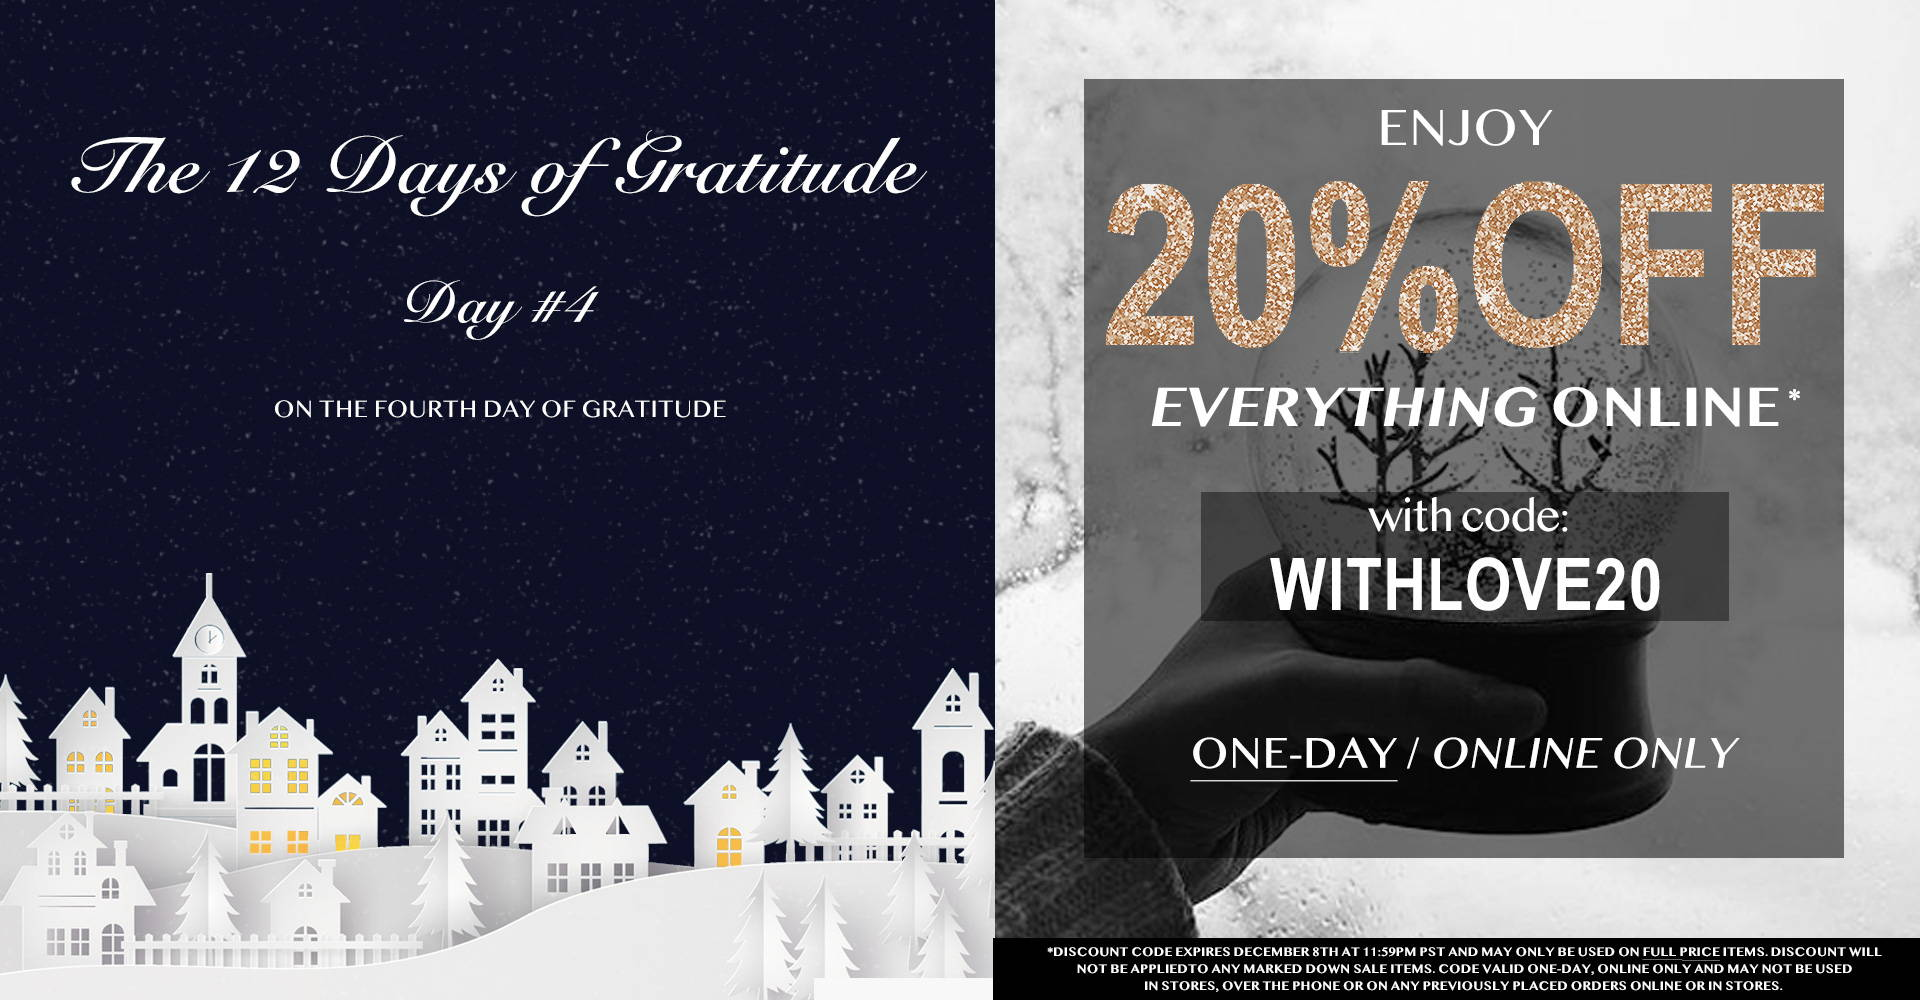 On the 4th Day of Gratitude Enjoy 20% Off Everything Online with code WITHLOVE20